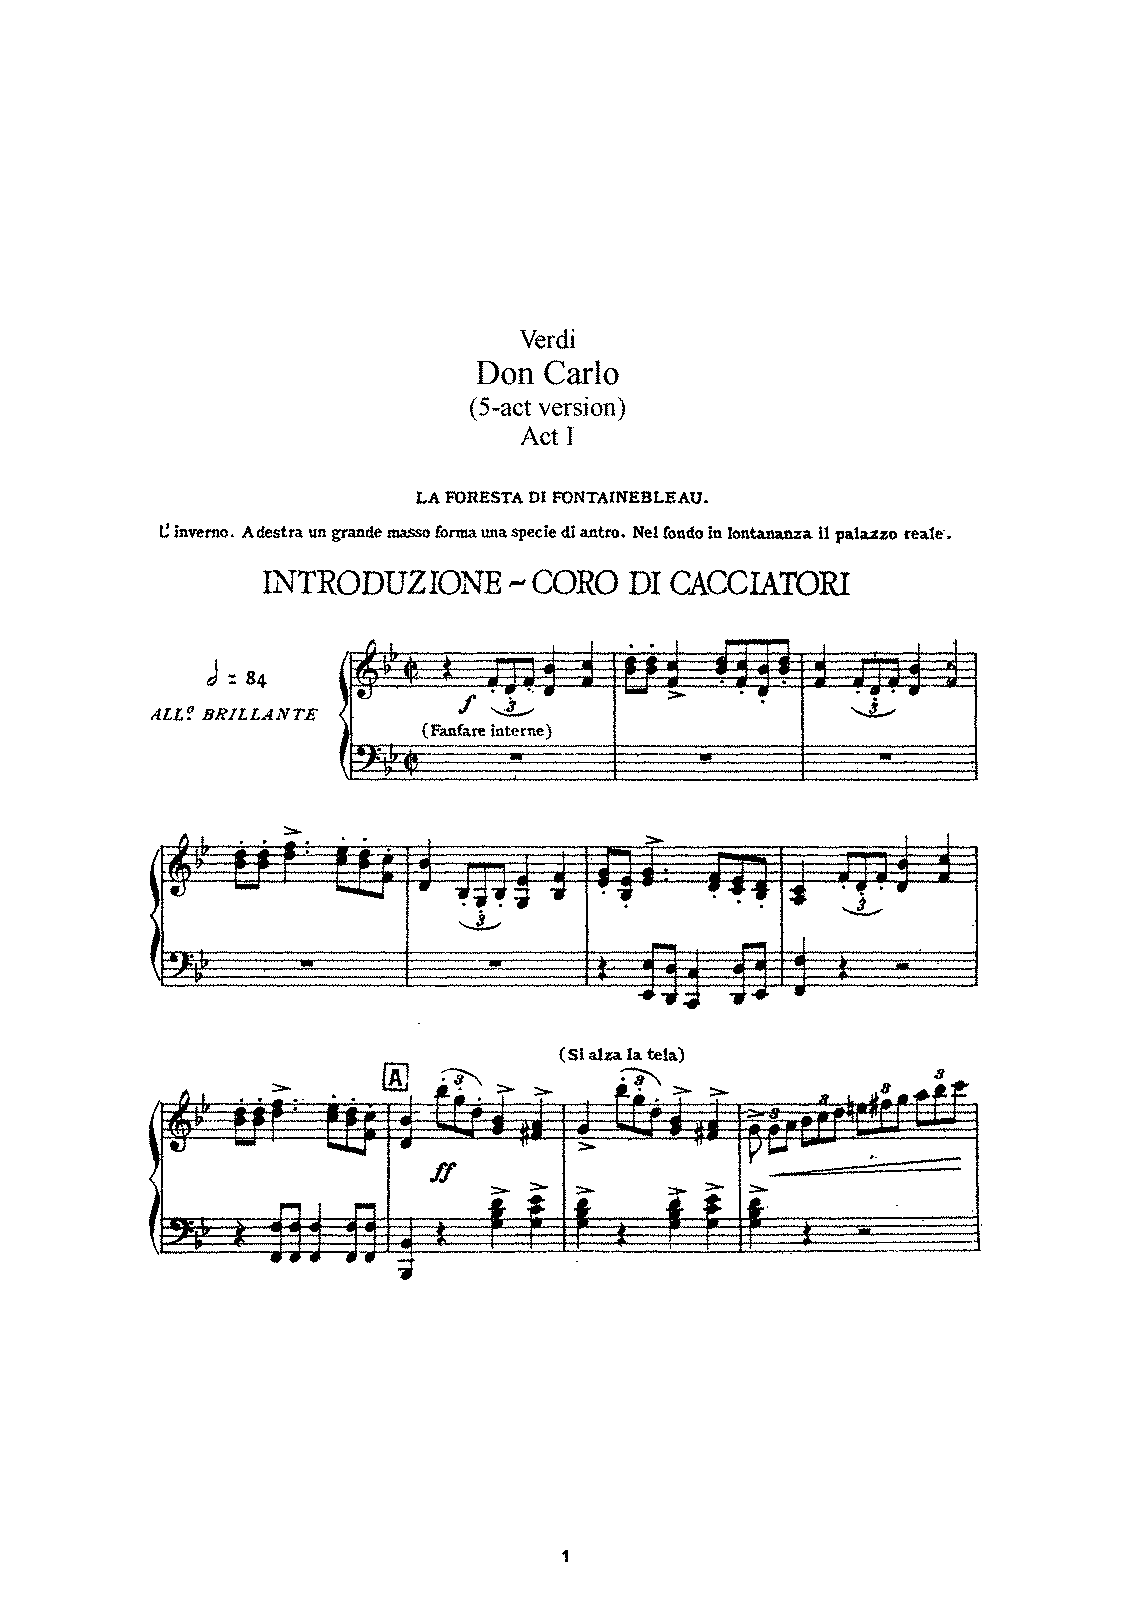 PMLP55451-Verdi - Don Carlo, 5-act - vocal score.pdf